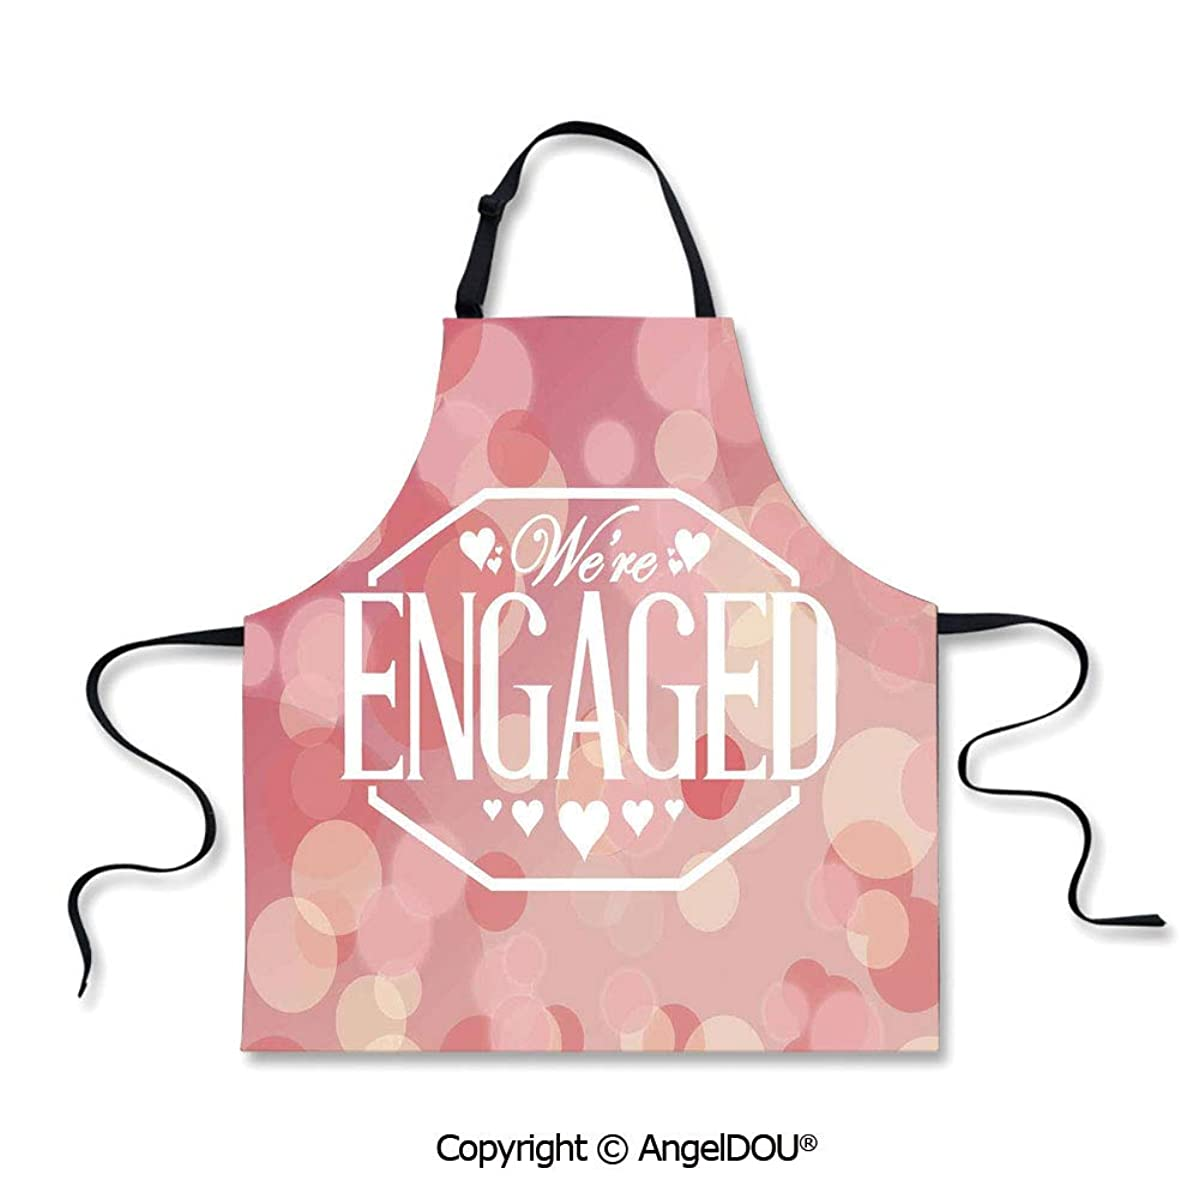 SCOXIXI Printed Kitchen Apron Baking Apron Engagement Party Cards with Blurry Abstract Circles Home Cooking BBQ Apron Cleaning Accessory.